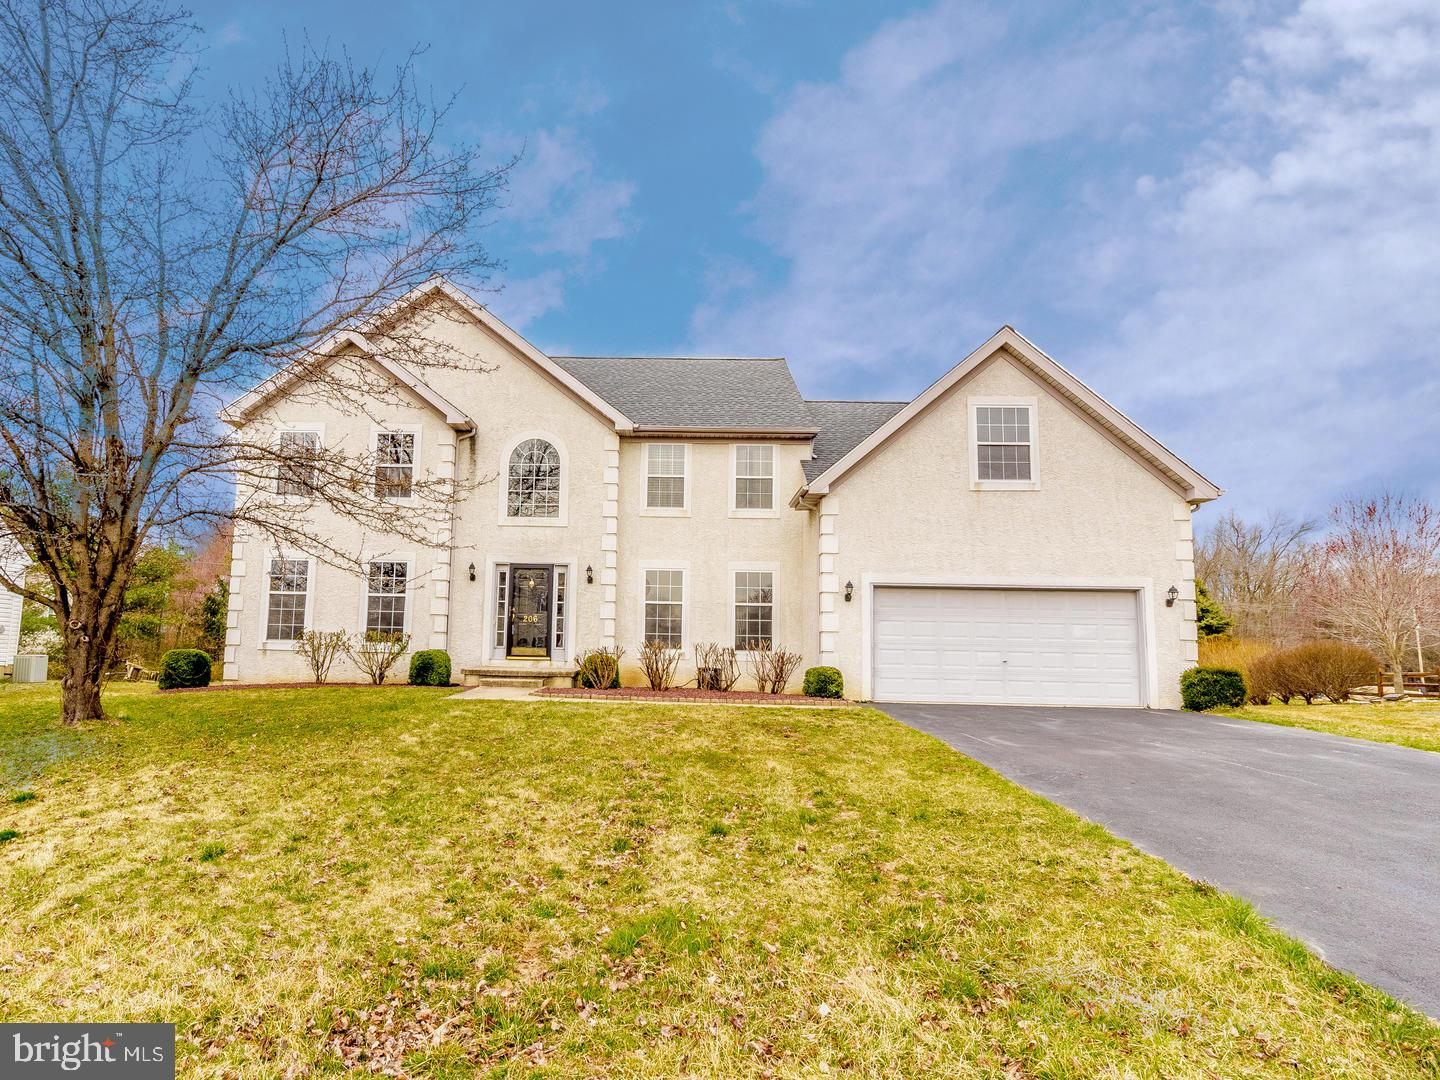 Outstanding opportunity to live in an updated 4 bedroom, 2.5 bath Clear Creek home in the award-winning Appoquinimink School District. This stately Colonial offers an open floor plan, tall windows and sits on an almost a half-acre lot. The two-story foyer with turned balcony staircase is a welcoming and impressive space. The center hall foyer leads you to both the formal living room and dining room, each with details like wainscoting, crown moulding and lots of natural light. The open floor-plan continues in the kitchen and great room. The eat-in kitchen features stainless steel appliances, including gas range, built-in microwave, French door refrigerator with freezer drawer and dishwasher. There's also an island with breakfast bar, separate pantry and the dining area with doors leading to a fabulous paver patio with a fire pit and pergola. The great room has vaulted ceilings, a gas fire place and a back staircase leading up to the bedrooms.  The main floor also includes a private study/office, laundry room and an updated powder room. Upstairs there's a large master bedroom with enough room to have a separate seating area, huge walk-in closet and an en-suite with garden tub, stall shower and a vanity with double sinks. The 3 other bedrooms are generously-sized and have large closets.  The hall bath has been updated with ceramic tile with mosaic details, handsome double sink vanity and tub with tile-surround. There's also a two-car garage and large basement that's just waiting to be finished.  This home has been well-maintained, including the new single-layer roof that was added in 2018. Conveniently located near Rt. 896, Rt. 40 and I-95. Close to restaurants, shopping, Lums Pond State Park and The University of Delaware.